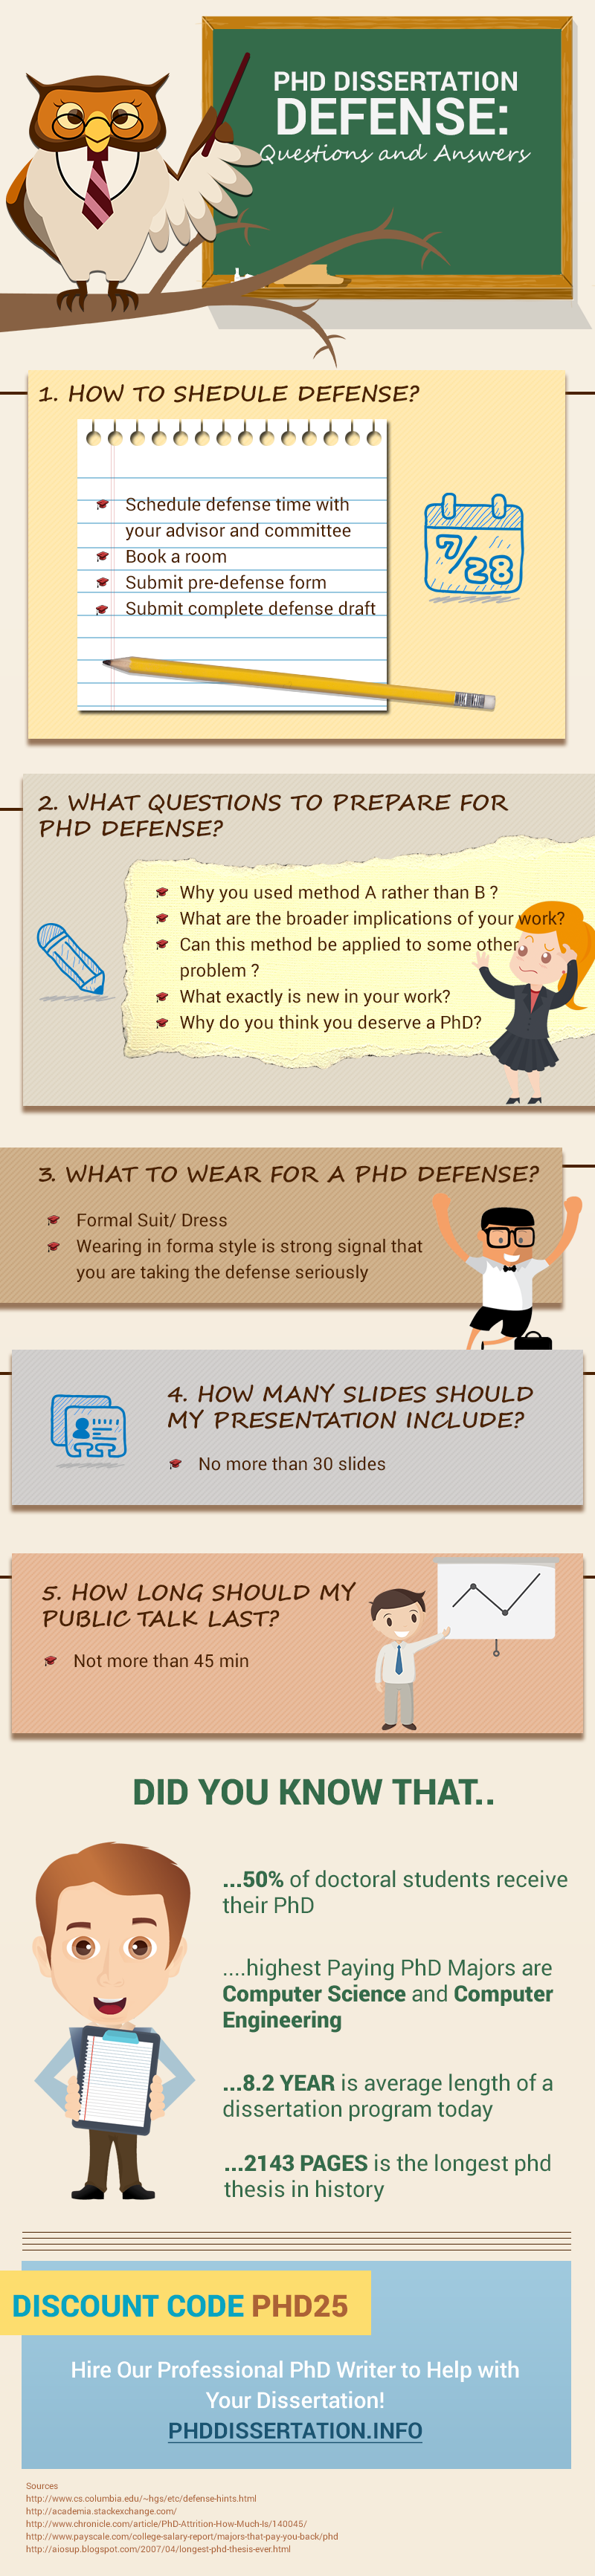 Electronic Theses & Dissertations